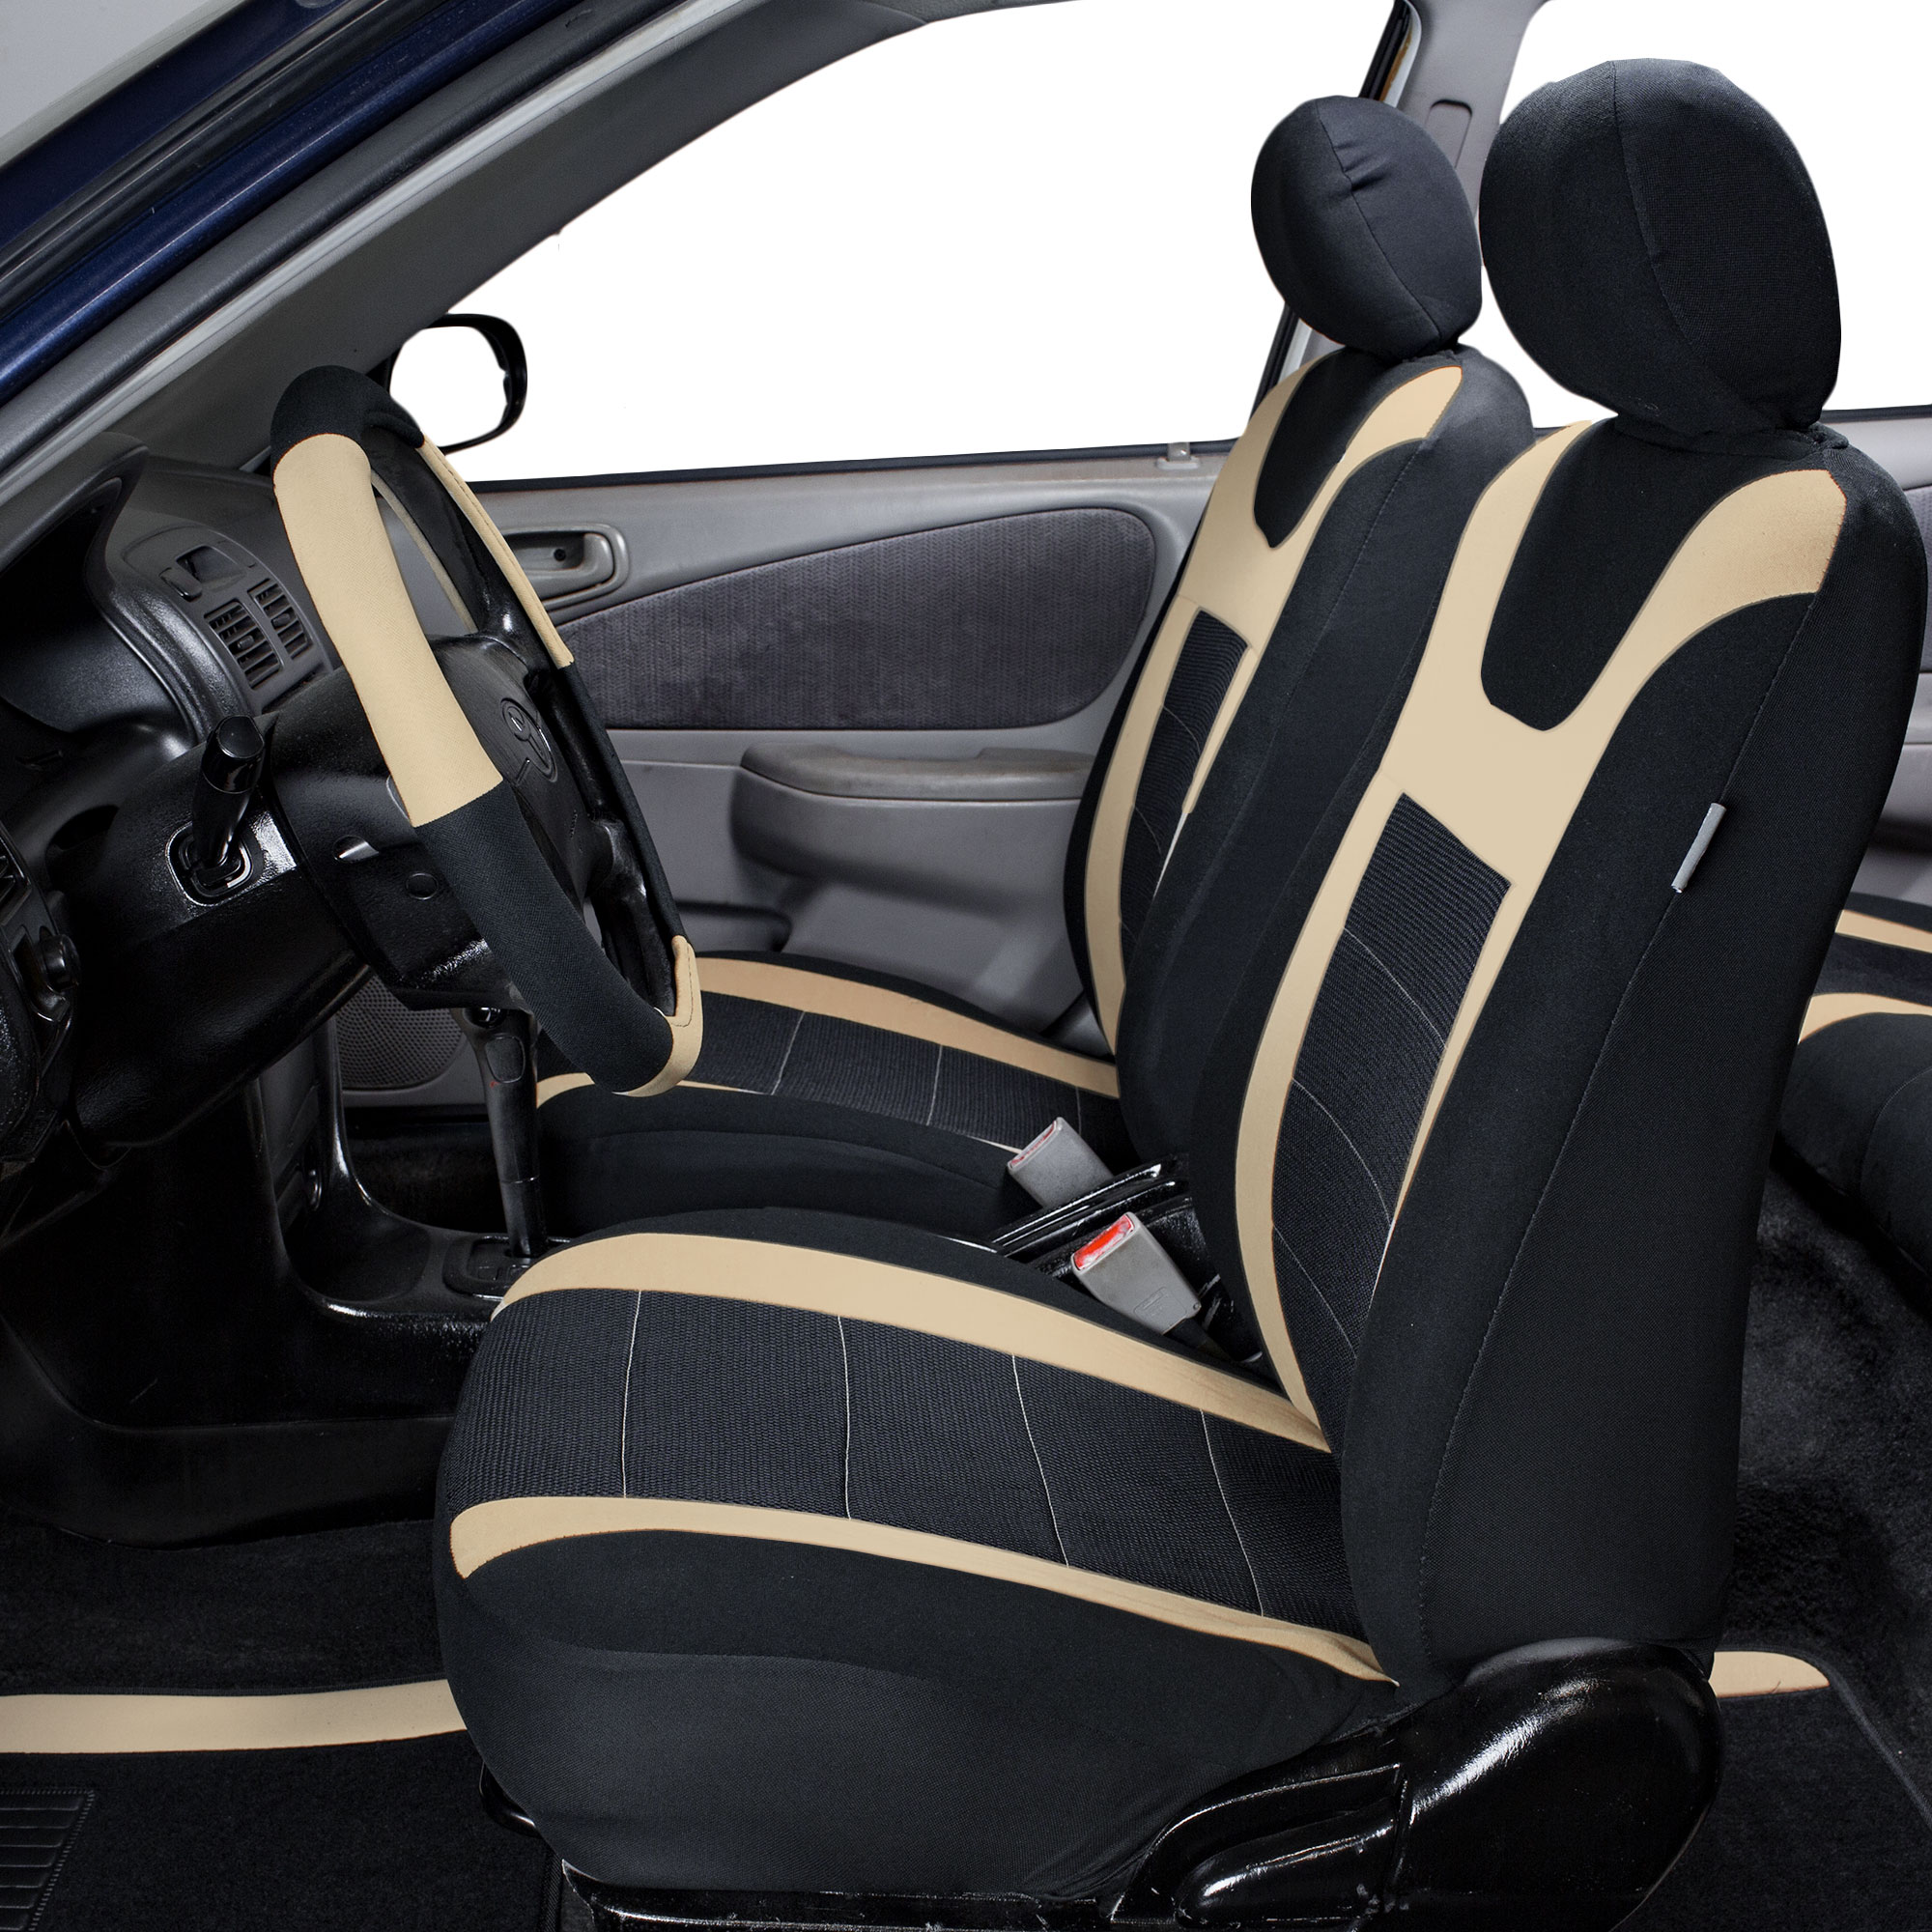 top quality sport car seat cover front back beige black for car truck suv ebay. Black Bedroom Furniture Sets. Home Design Ideas